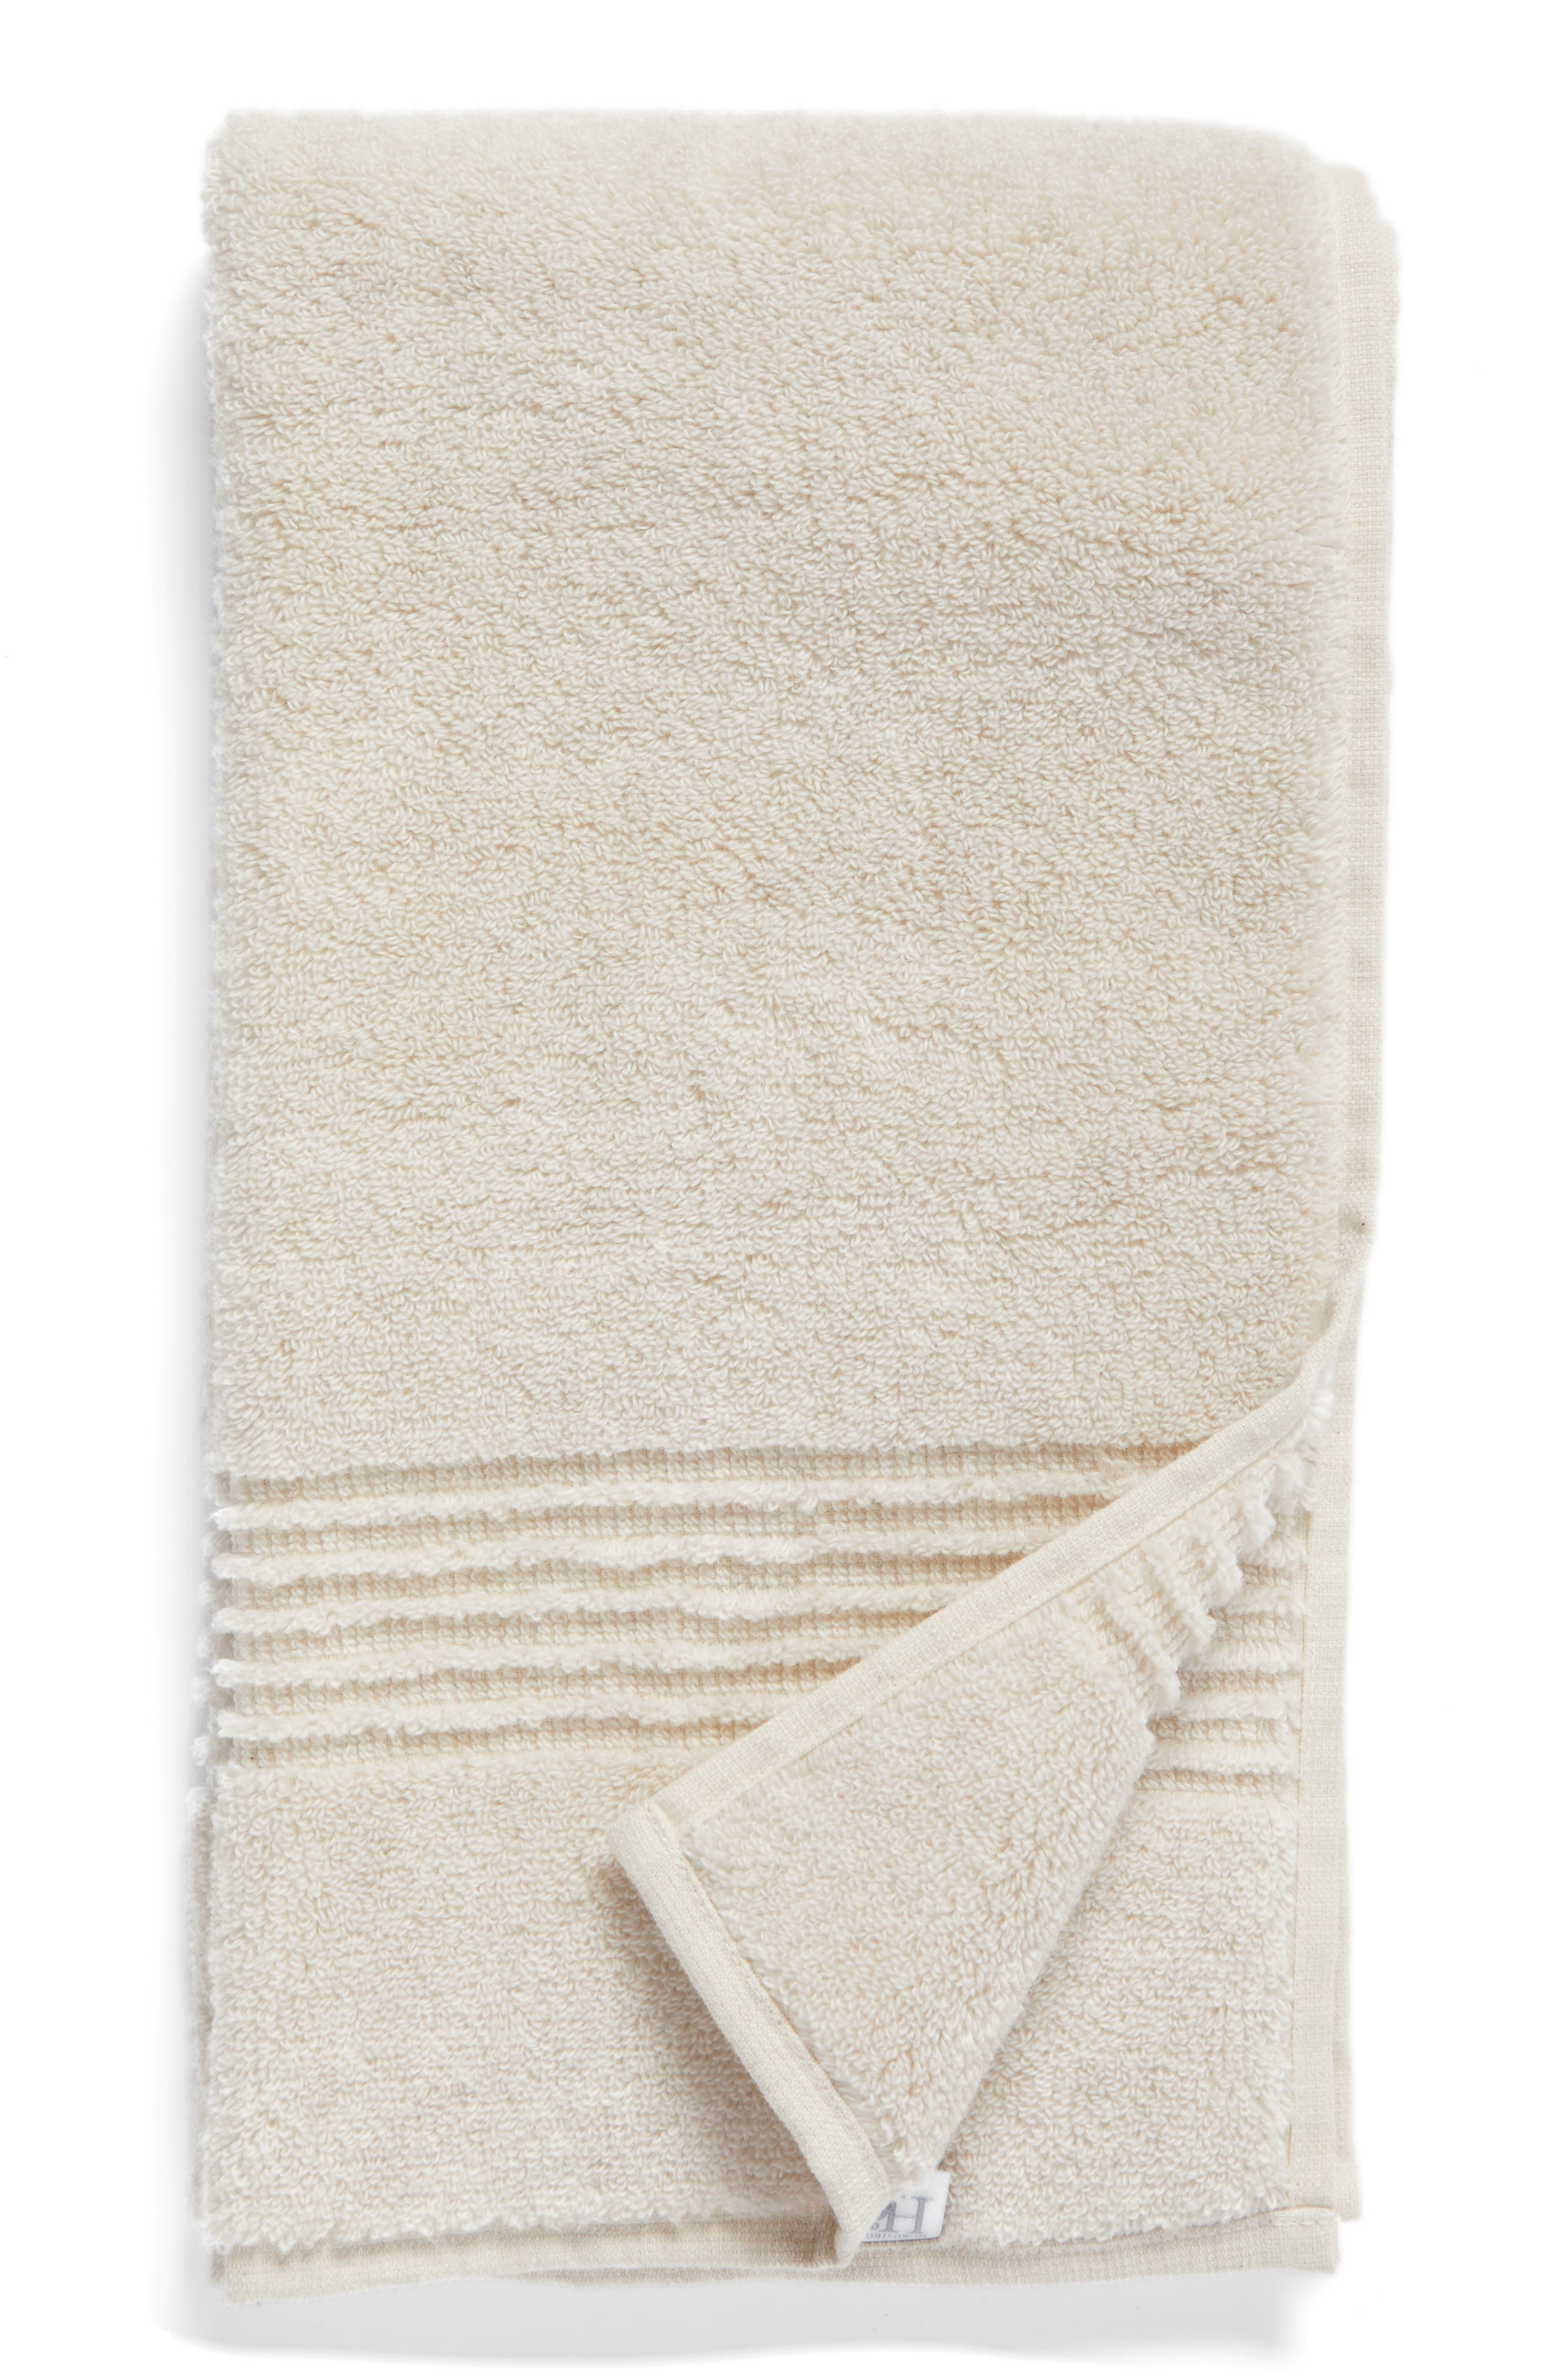 Nordstrom at Home Organic Hydrocotton Heathered Hand Towel